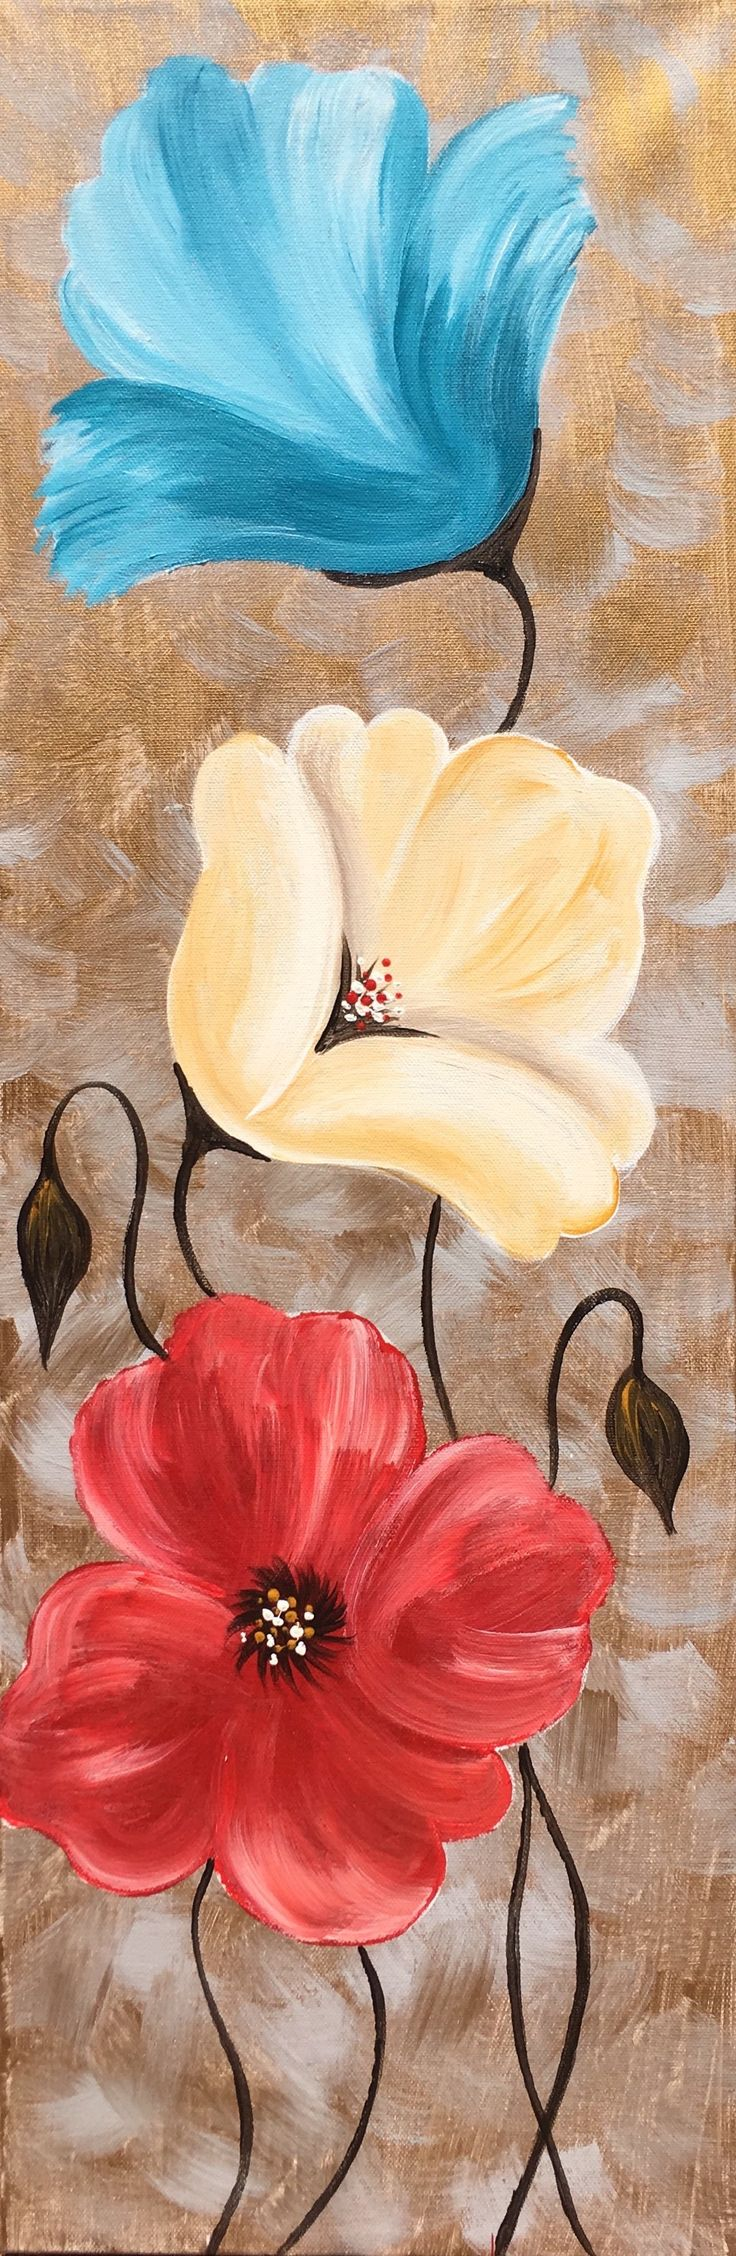 "Paint Colorful Poppies at Pinot's Palette. Change colors to match your home decor! 10"" x 30"" canvas. #diyhome #girlsnightout #homedecor #flowerpaintings #acrylicpainting"